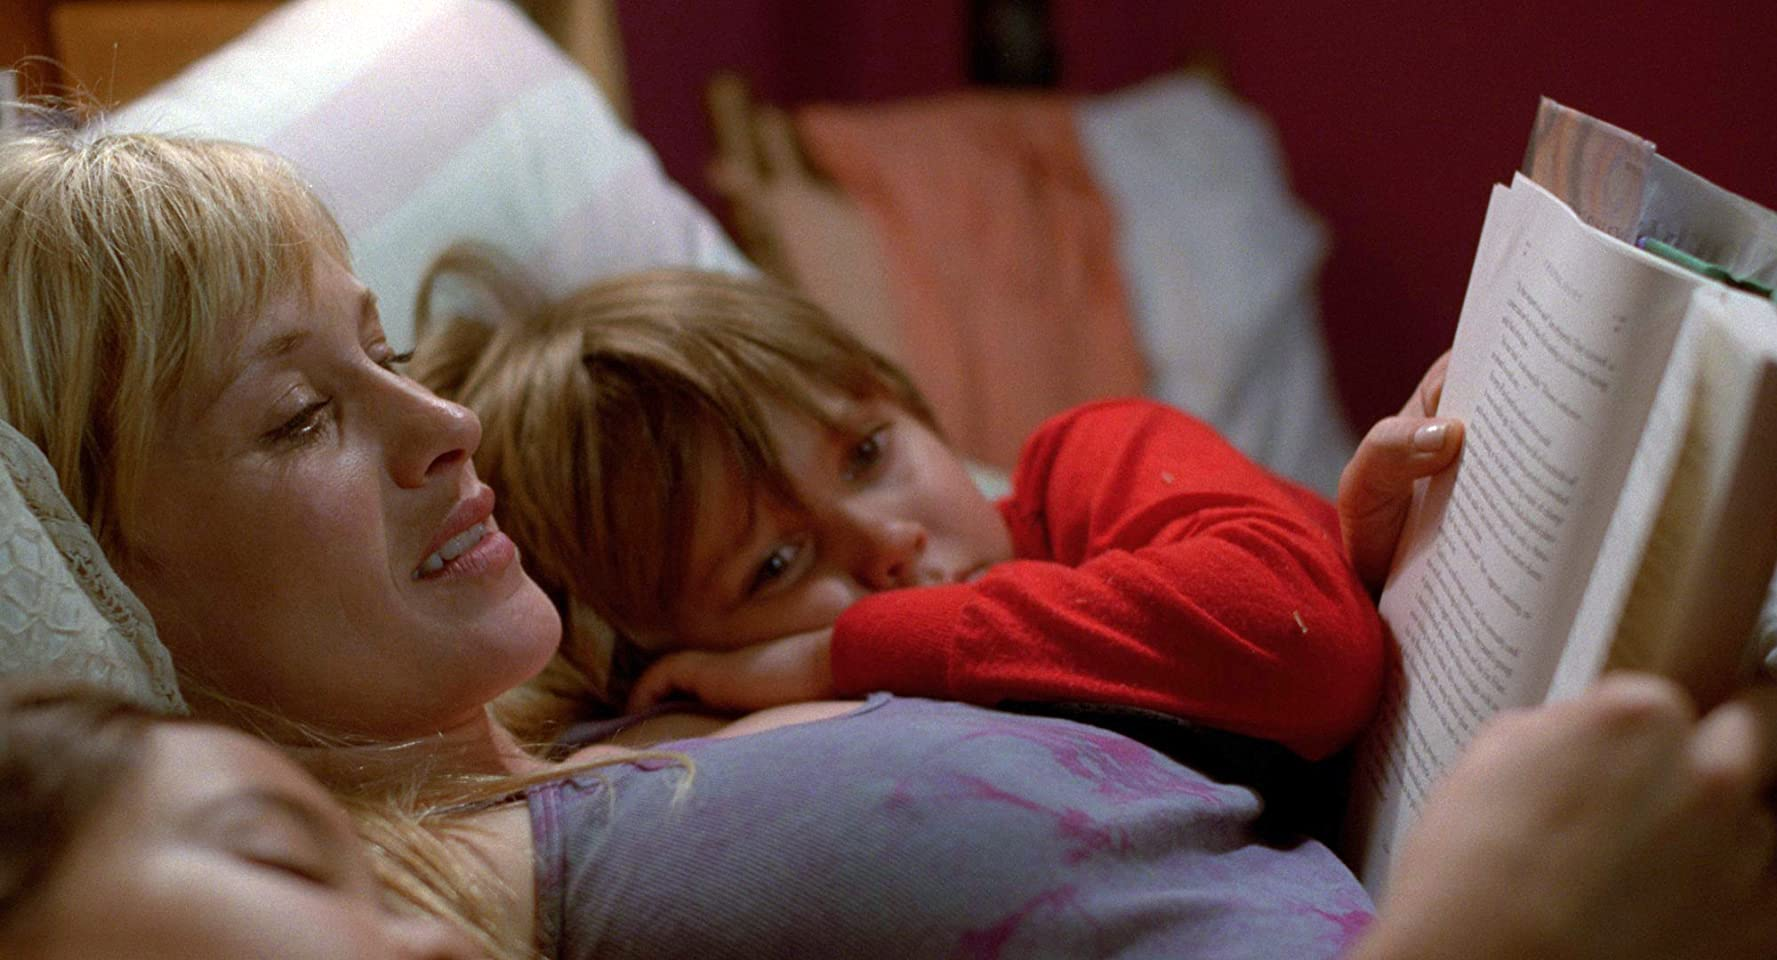 Patricia Arquette and Ellar Coltrane in Boyhood (2014)